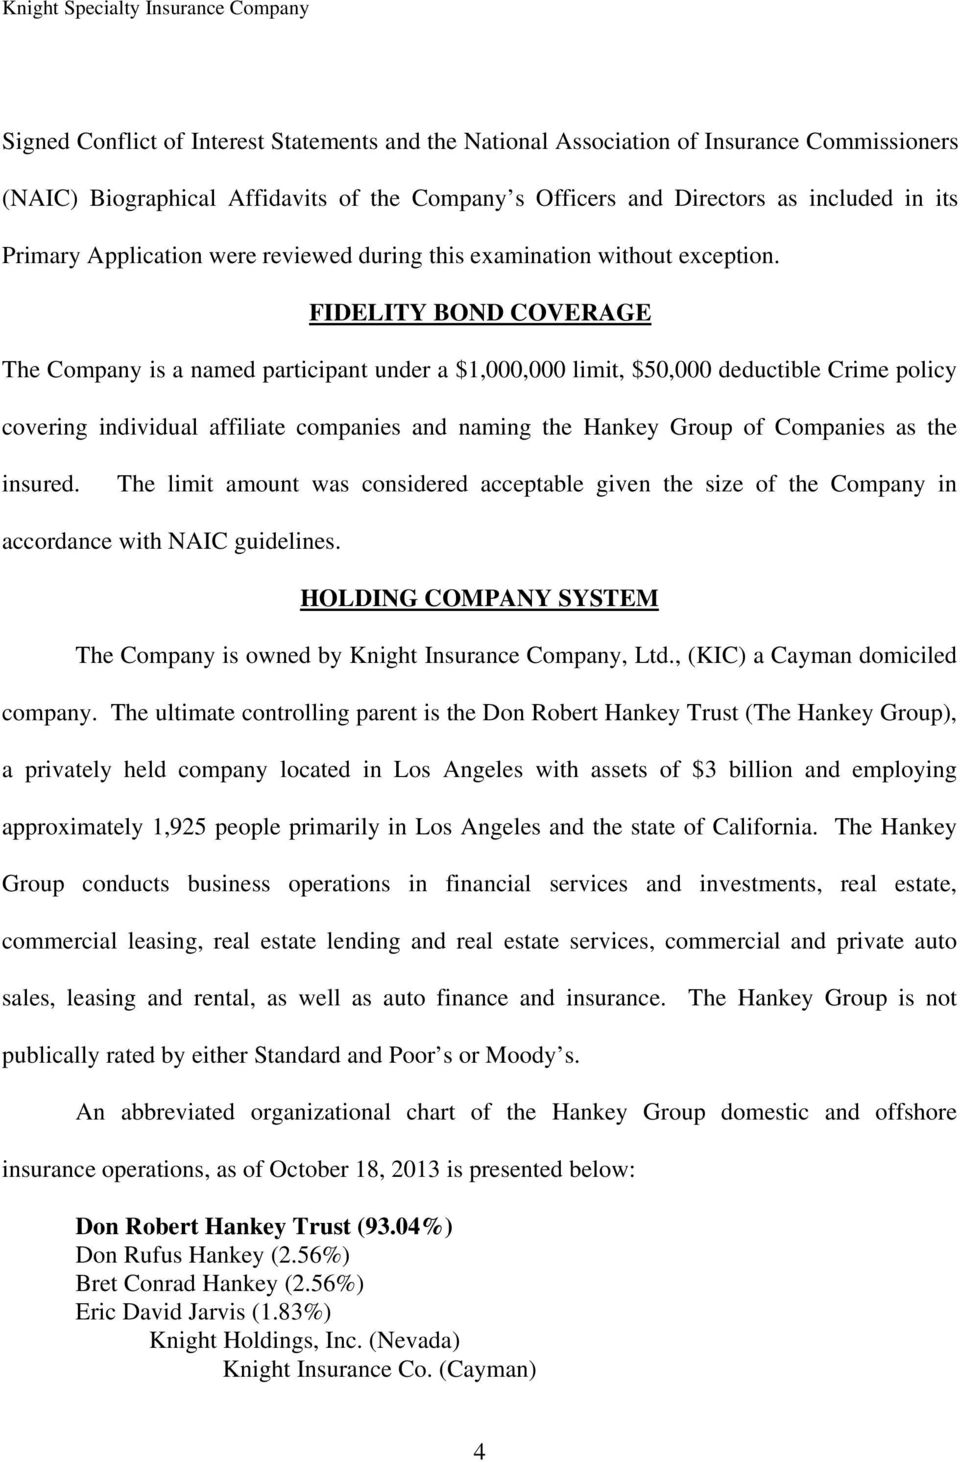 FIDELITY BOND COVERAGE The Company is a named participant under a $1,000,000 limit, $50,000 deductible Crime policy covering individual affiliate companies and naming the Hankey Group of Companies as